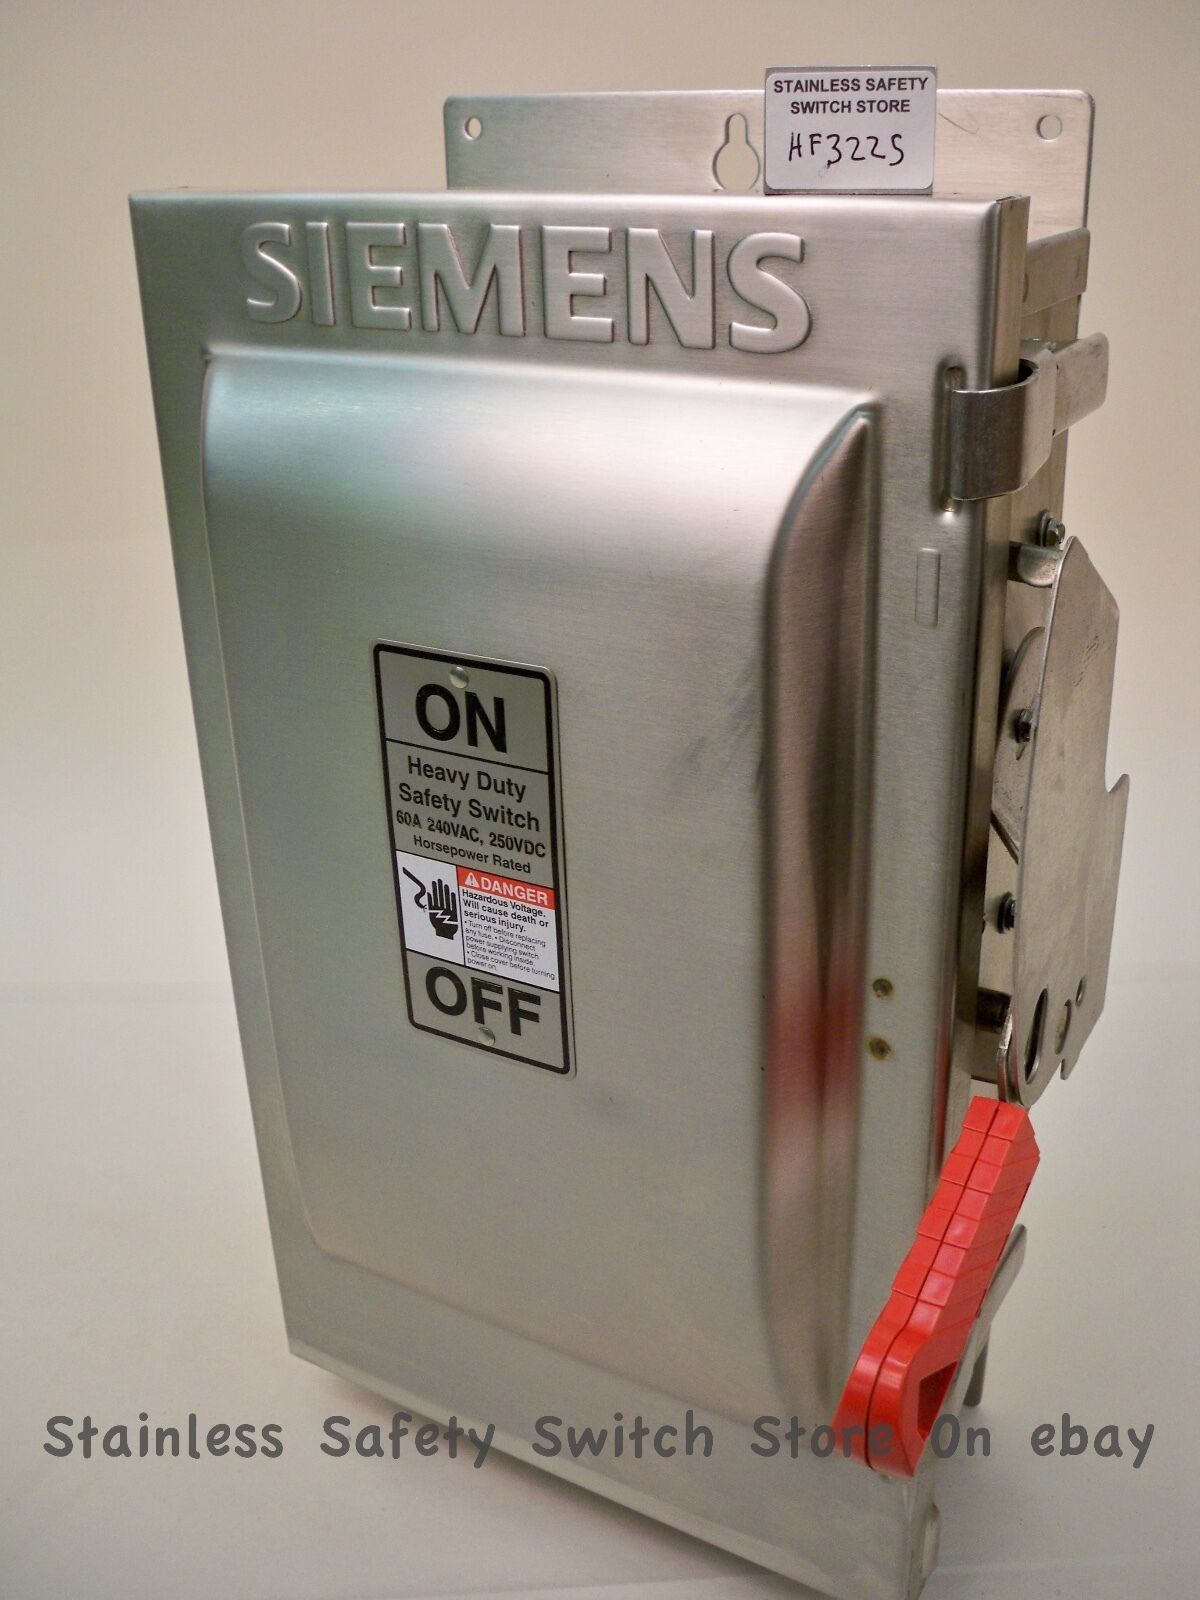 Siemens stainless hf322s 60 amp 240 volt 3ph fused safety siemens stainless hf322s 60 amp 240 volt 3ph fused safety disconnect switch new sciox Images